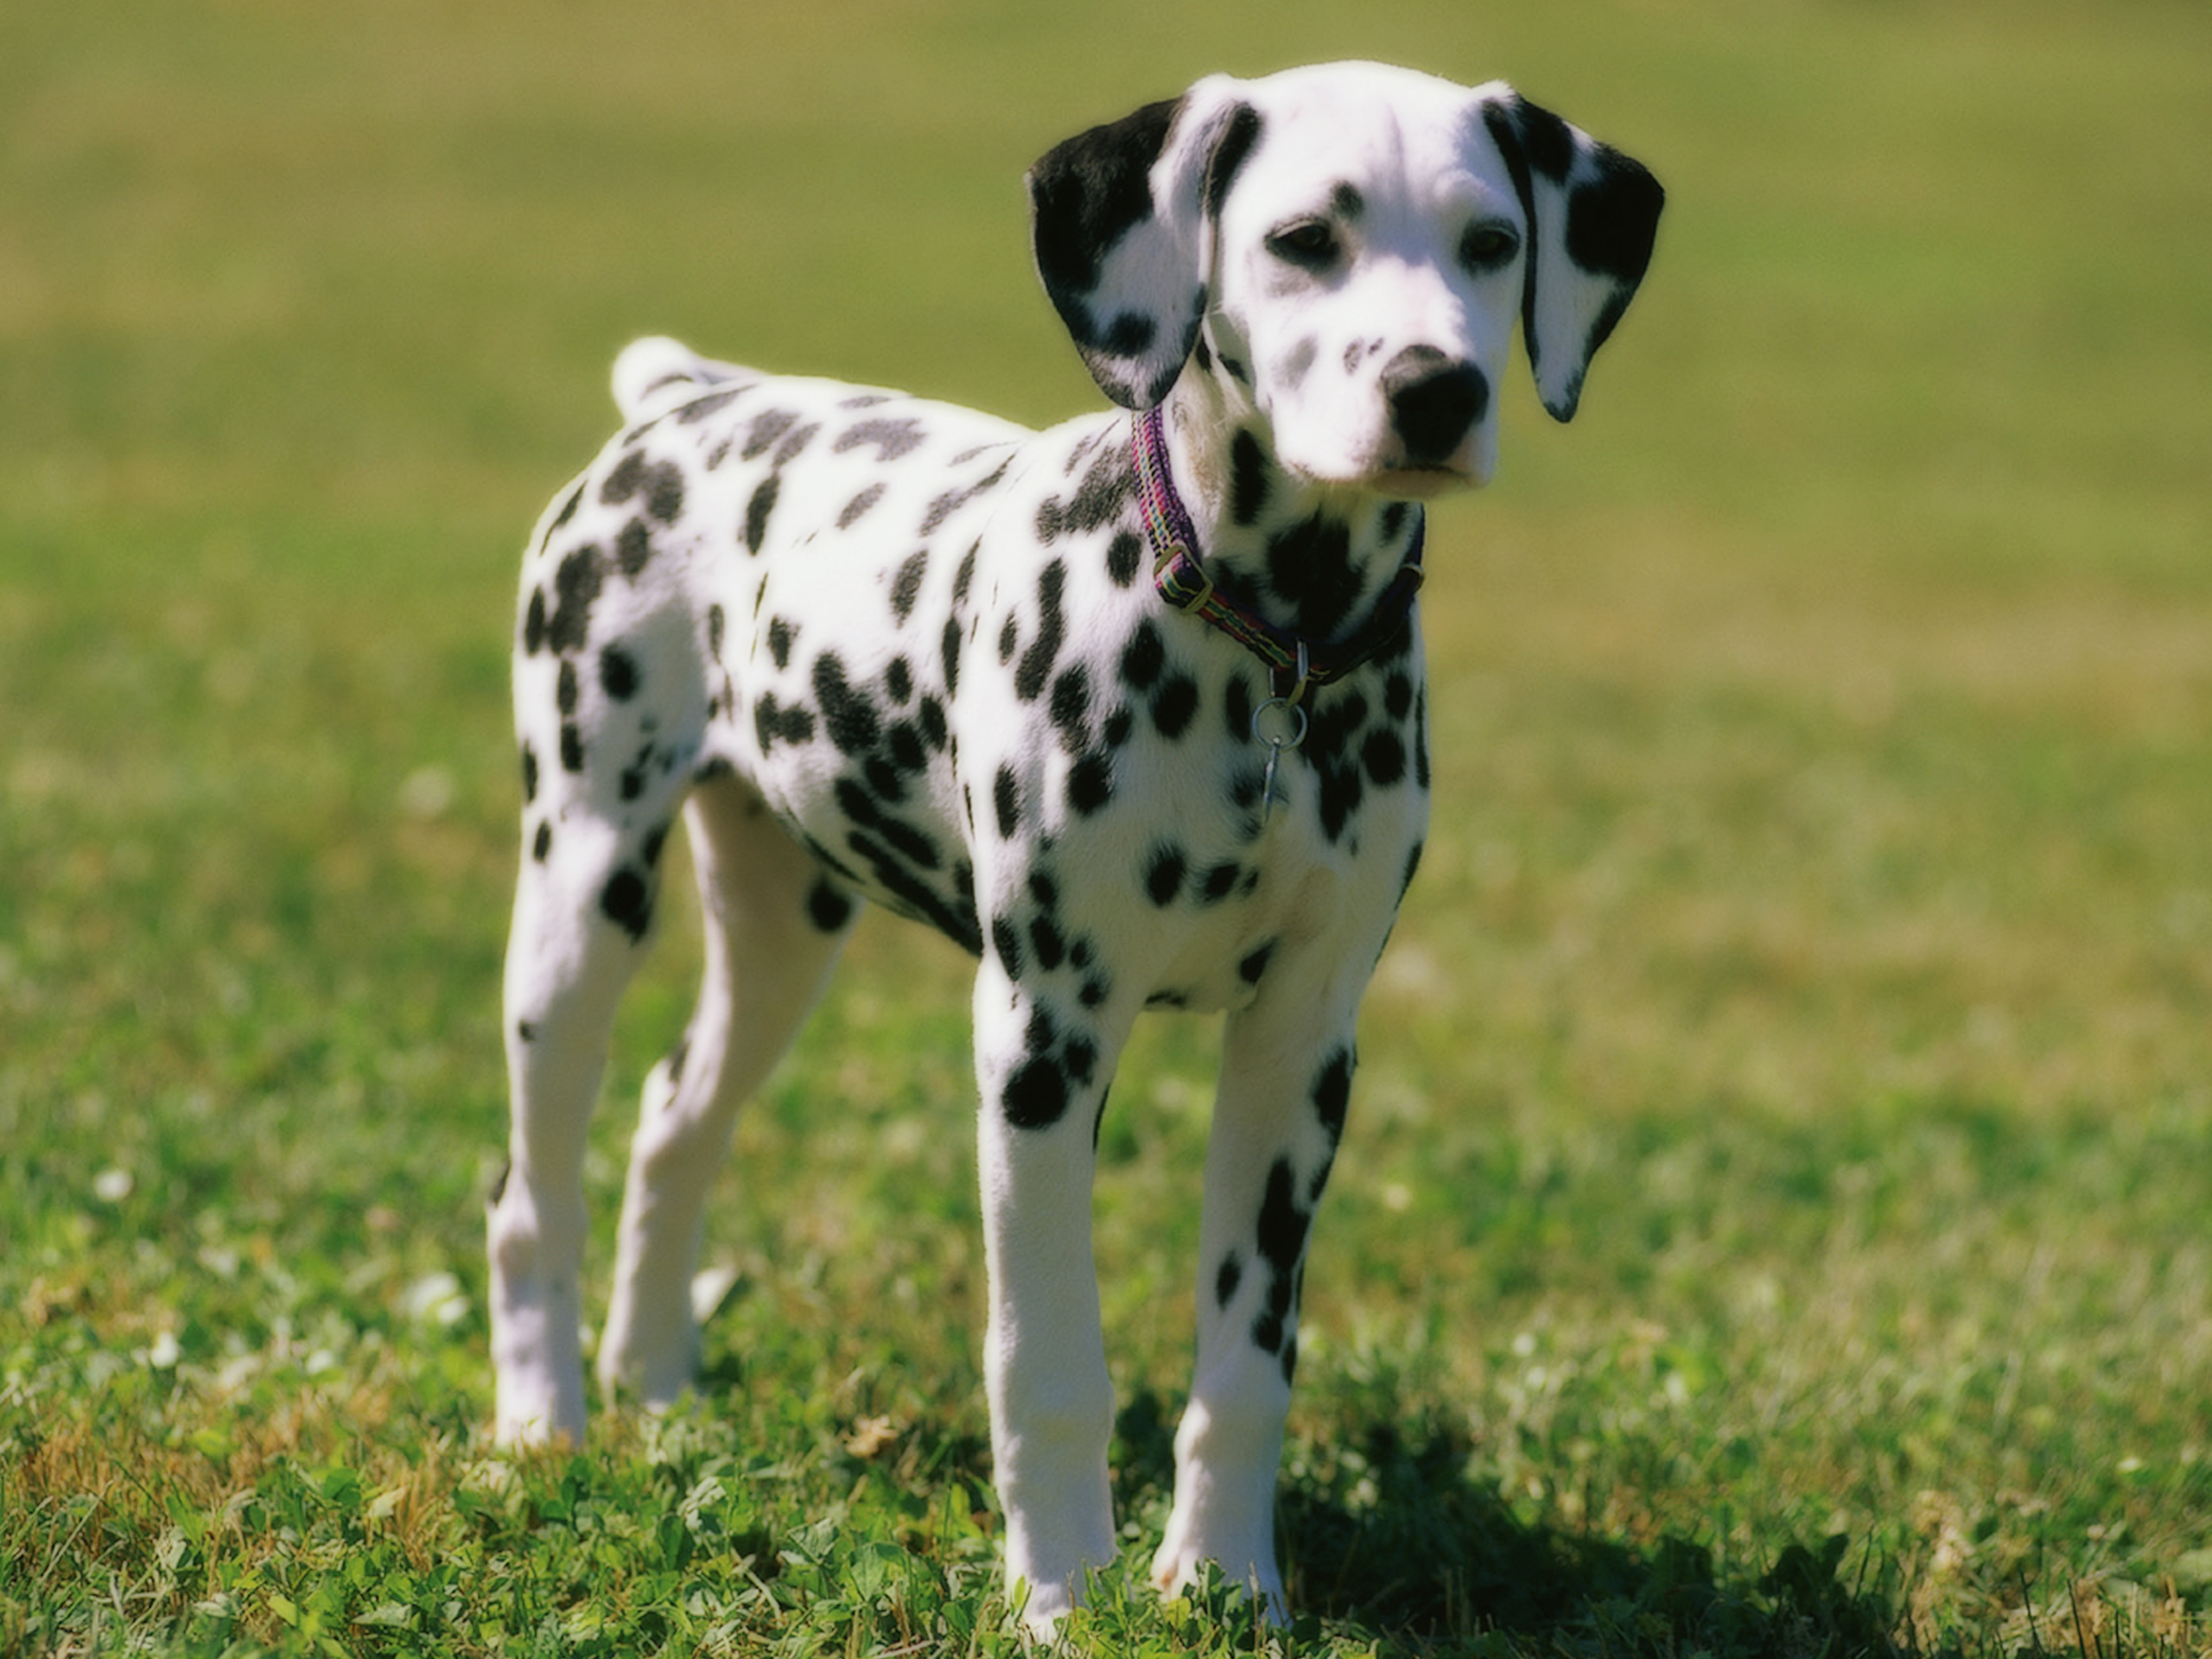 4k Hd <b>Wallpaper Dalmatian</b> Dog Widescreen <b>Desktop</b> Macbook - Damian ...